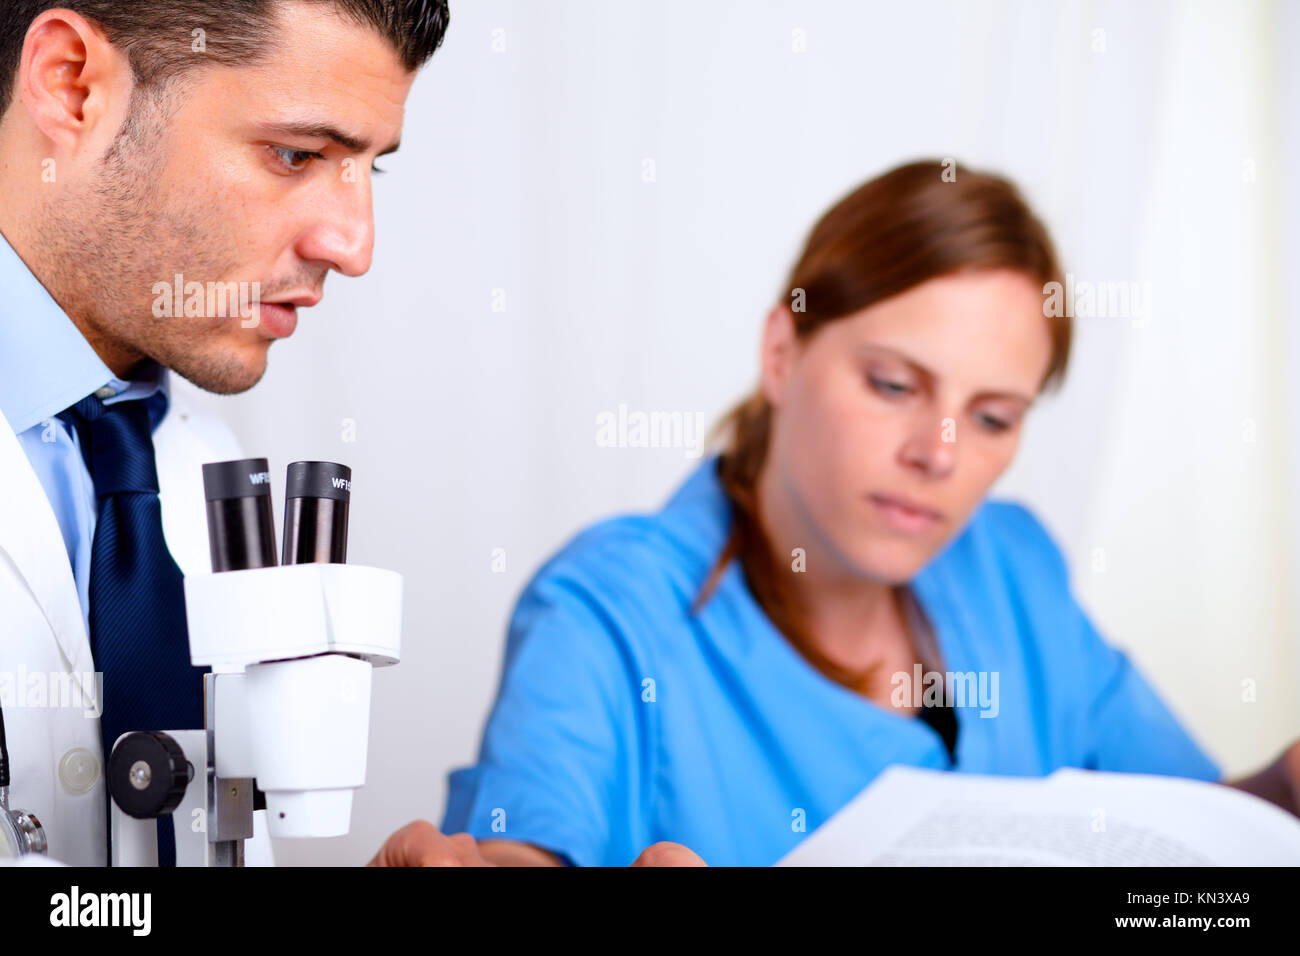 Portrait of two colleagues working at laboratory at hospital indoor. - Stock Image